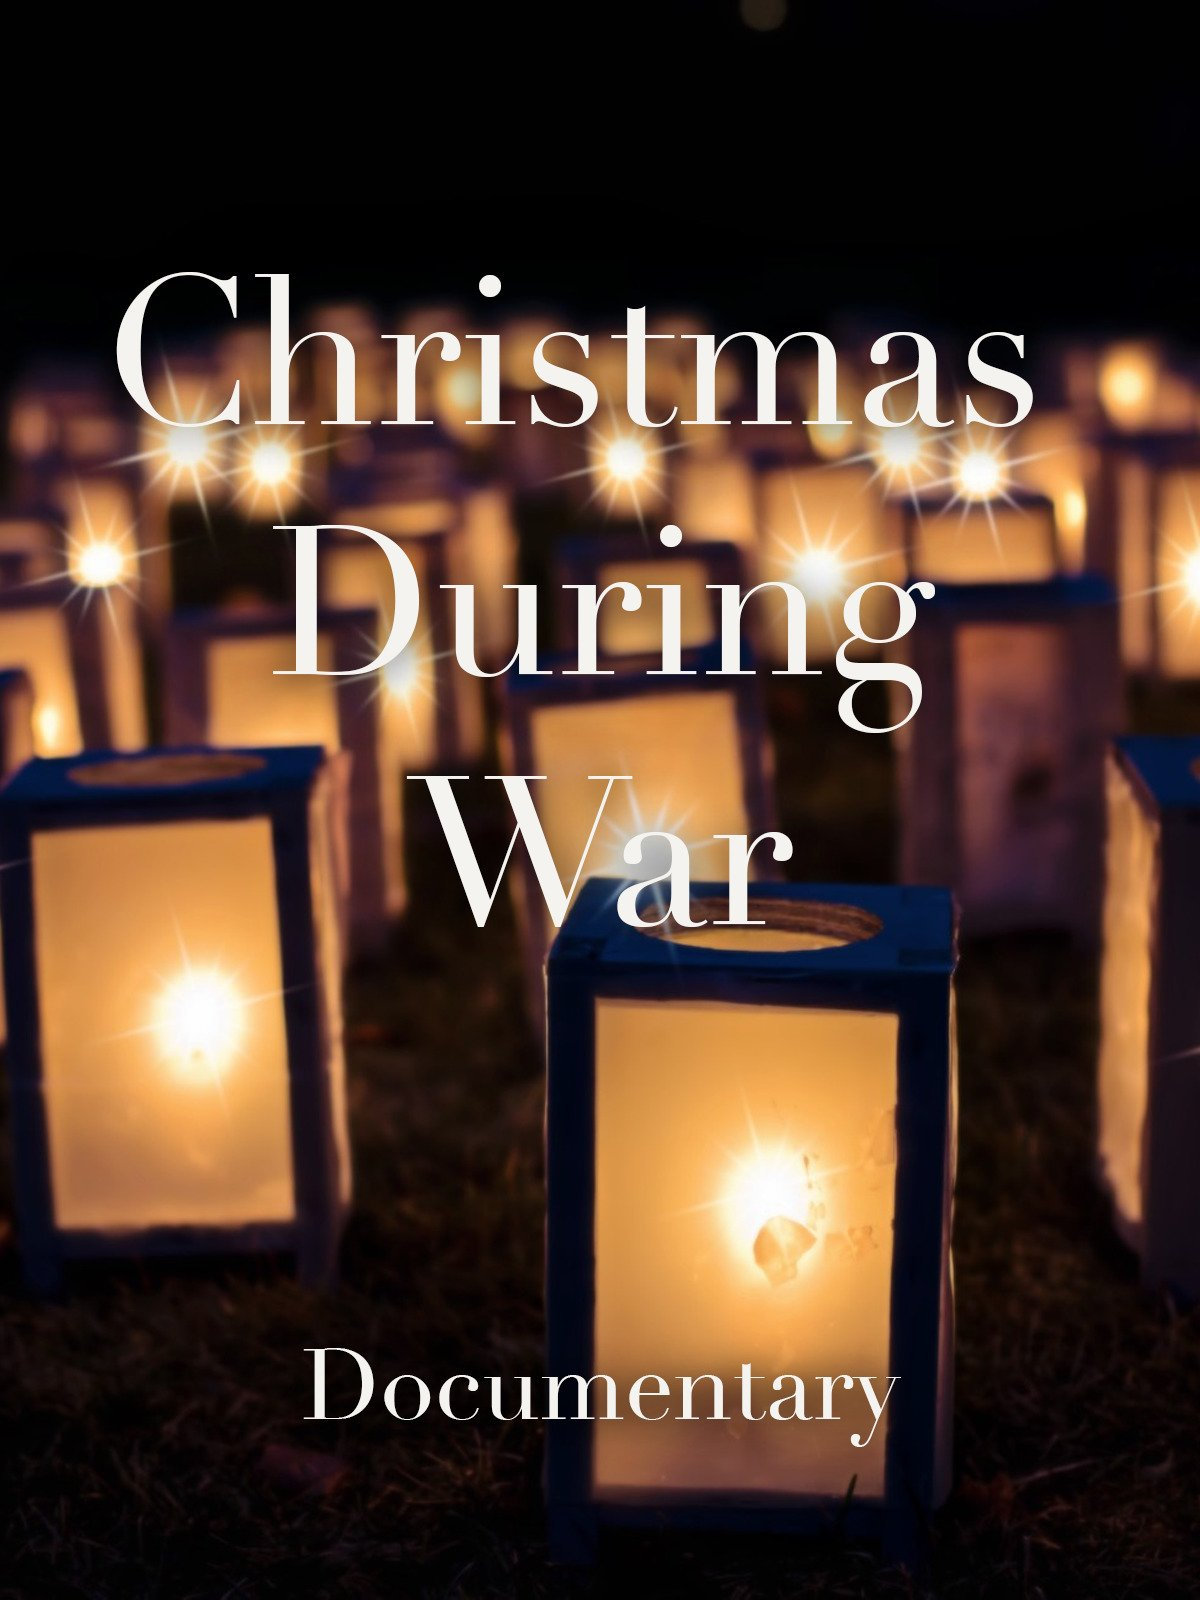 Christmas During War Documentary